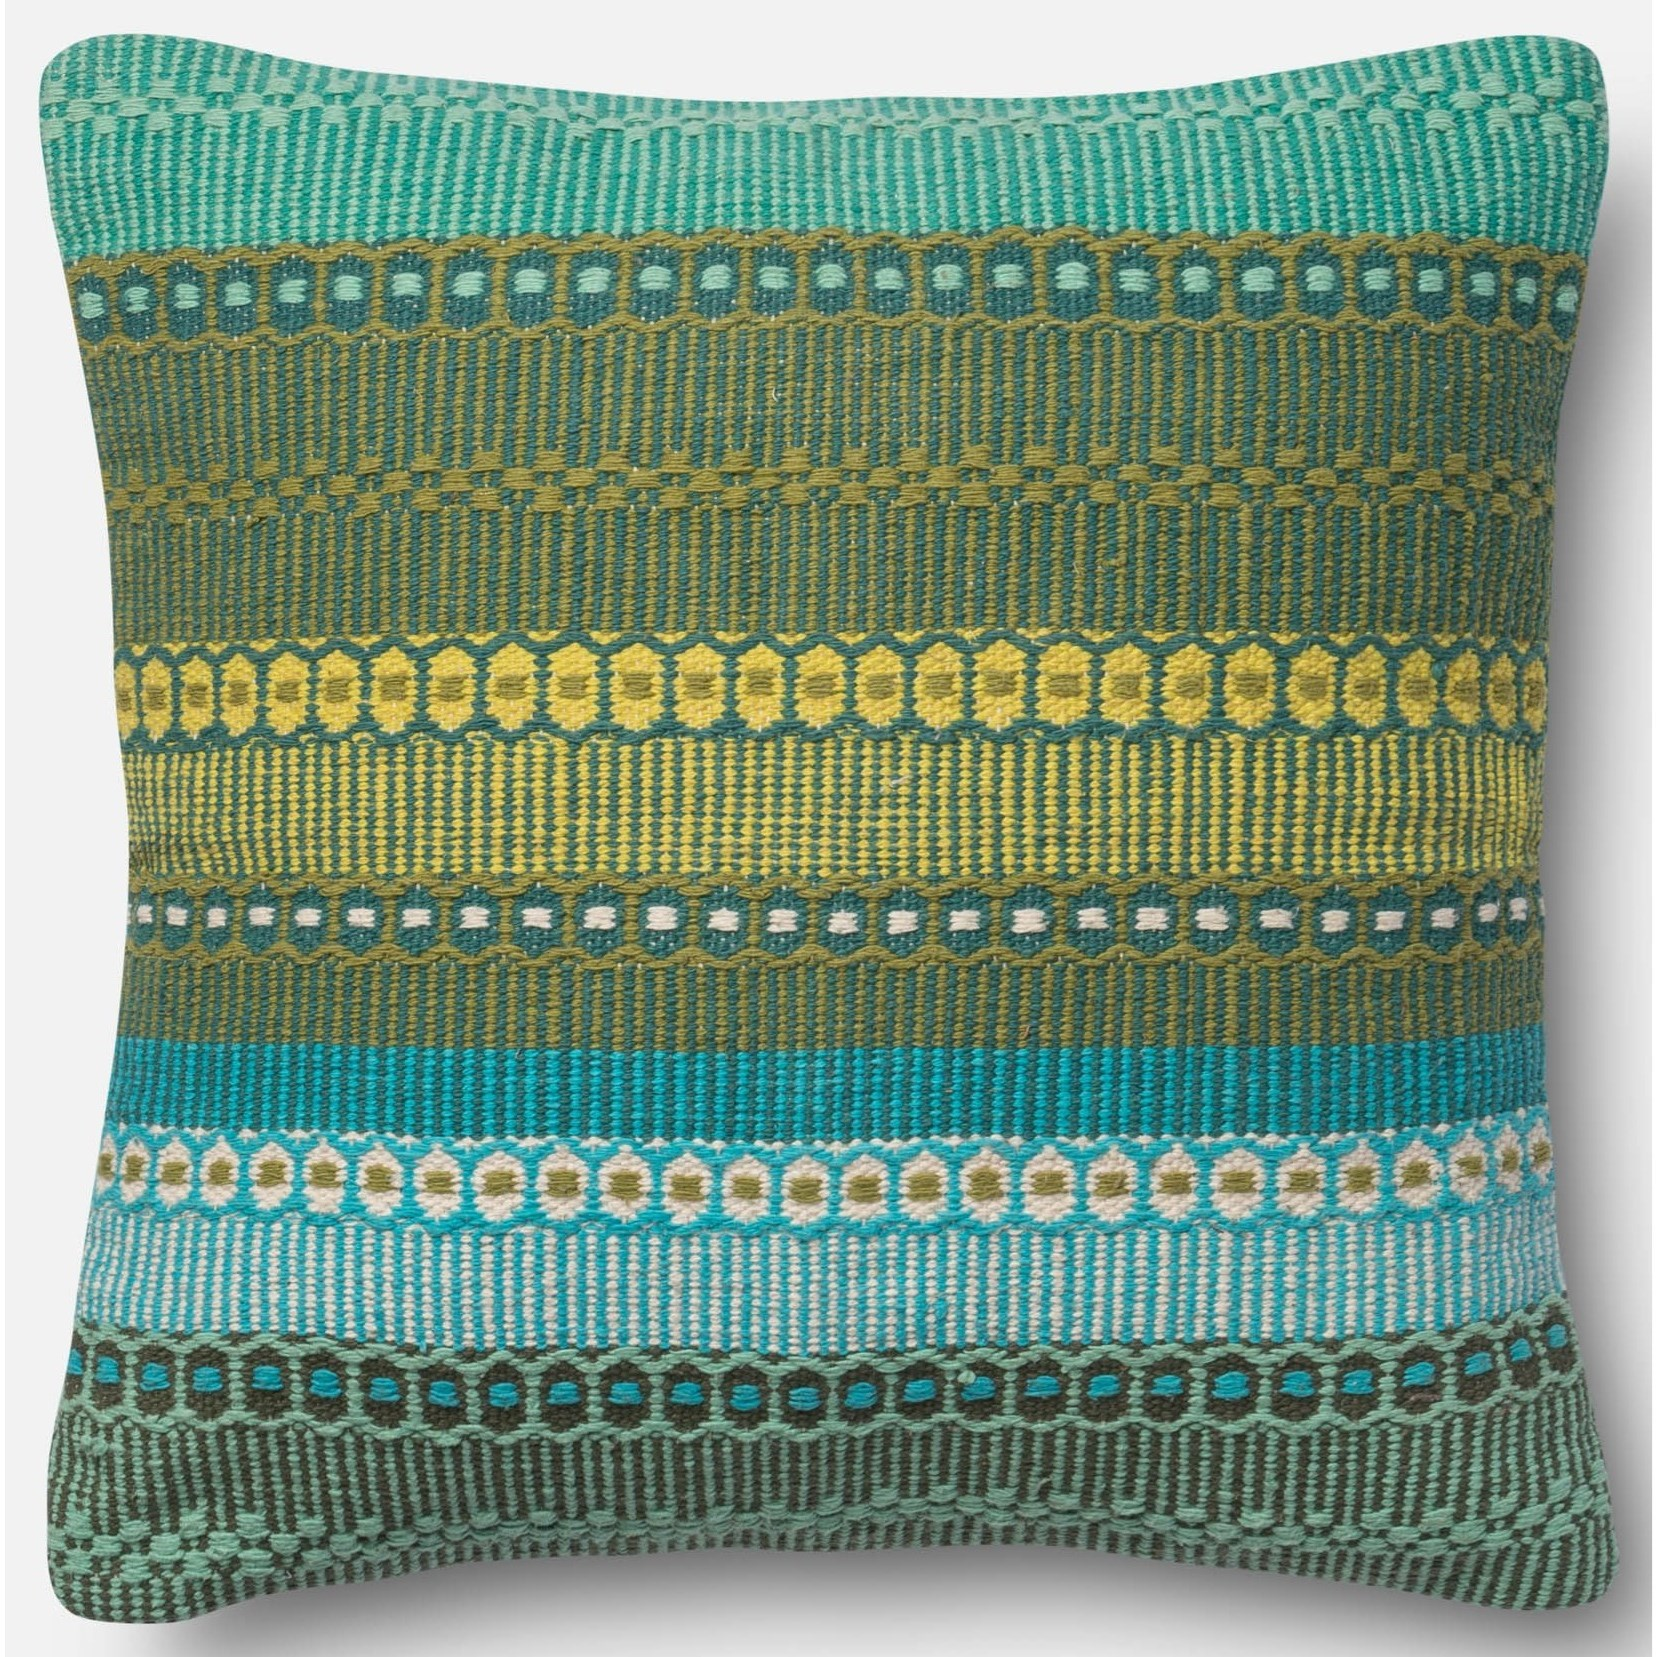 "Accent Pillows 22"" X 22"" Down Pillow by Loloi Rugs at Sprintz Furniture"